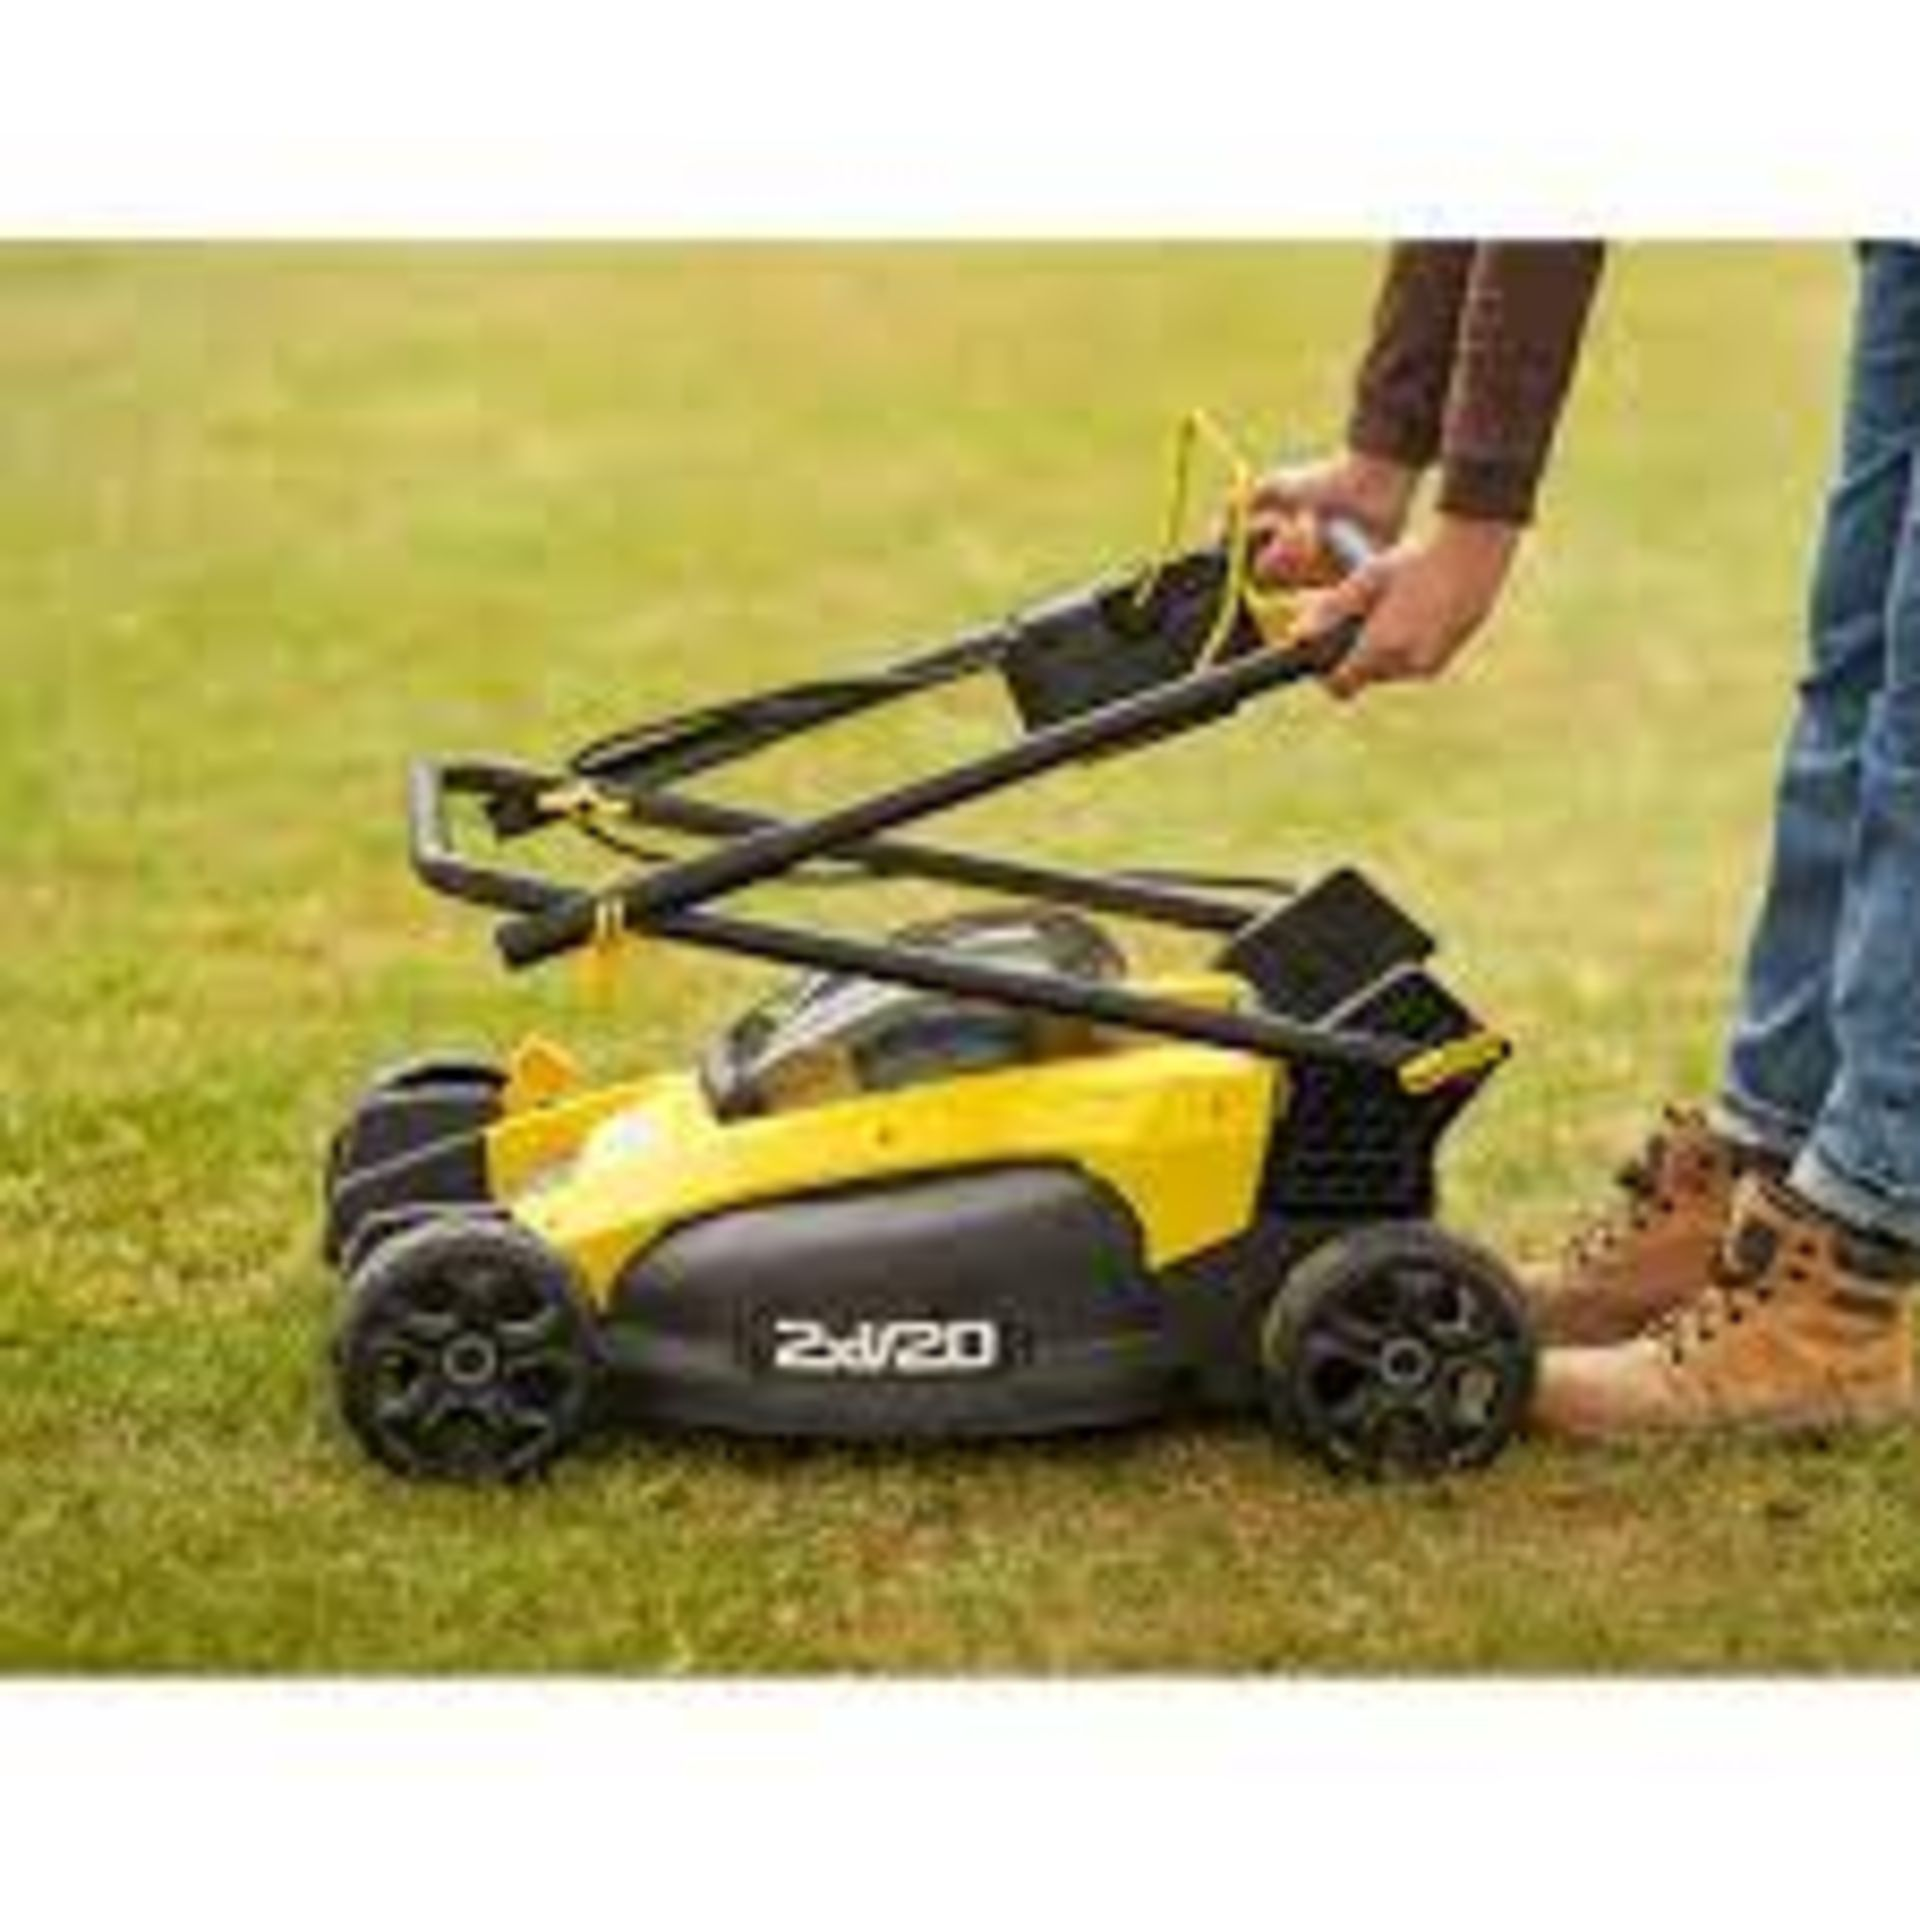 (P10) 1x Stanley Fatmax V20 Lithium Ion 51cm Push Mower RRP £399.99. New, Sealed Item. - Image 2 of 4